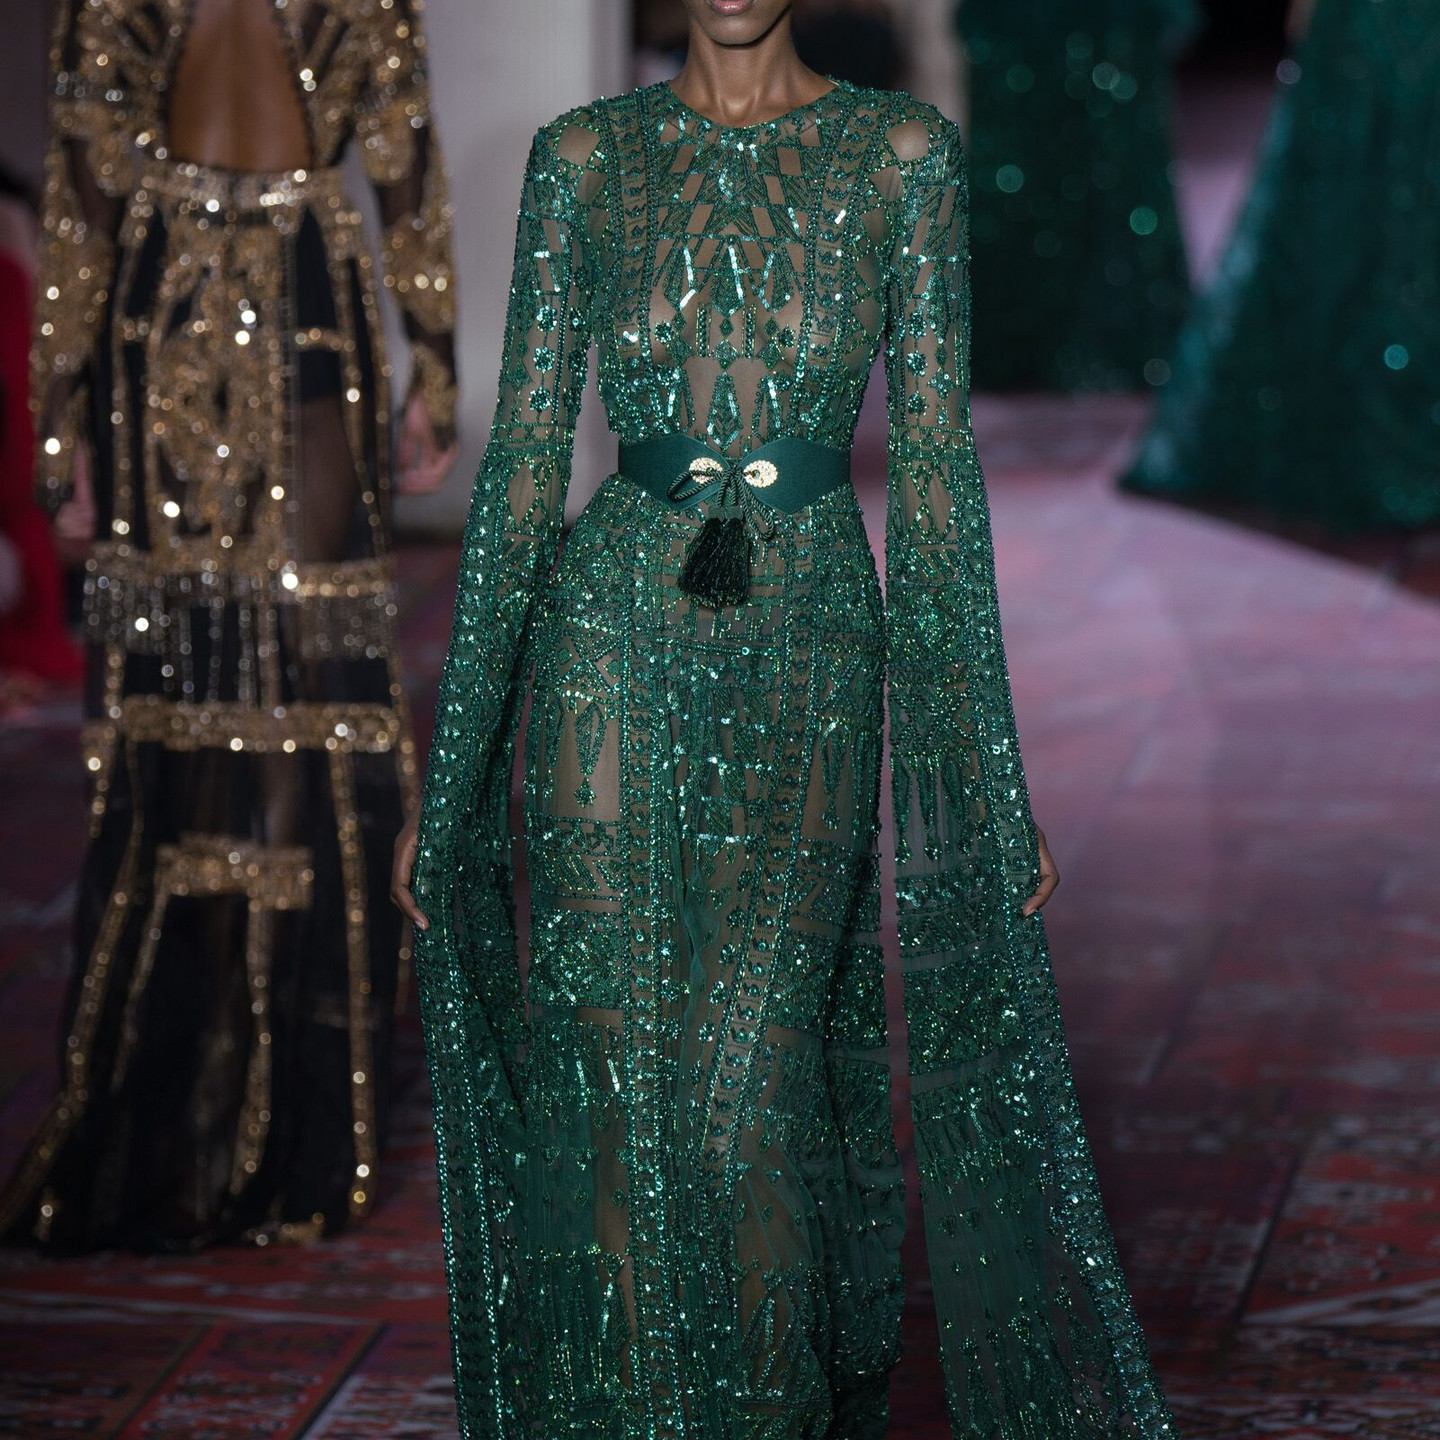 ZUHAIR MURAD COUTURE FALL-WINTER 2019 MIRAGES ET OASIS SHOT BY : Antonio SO